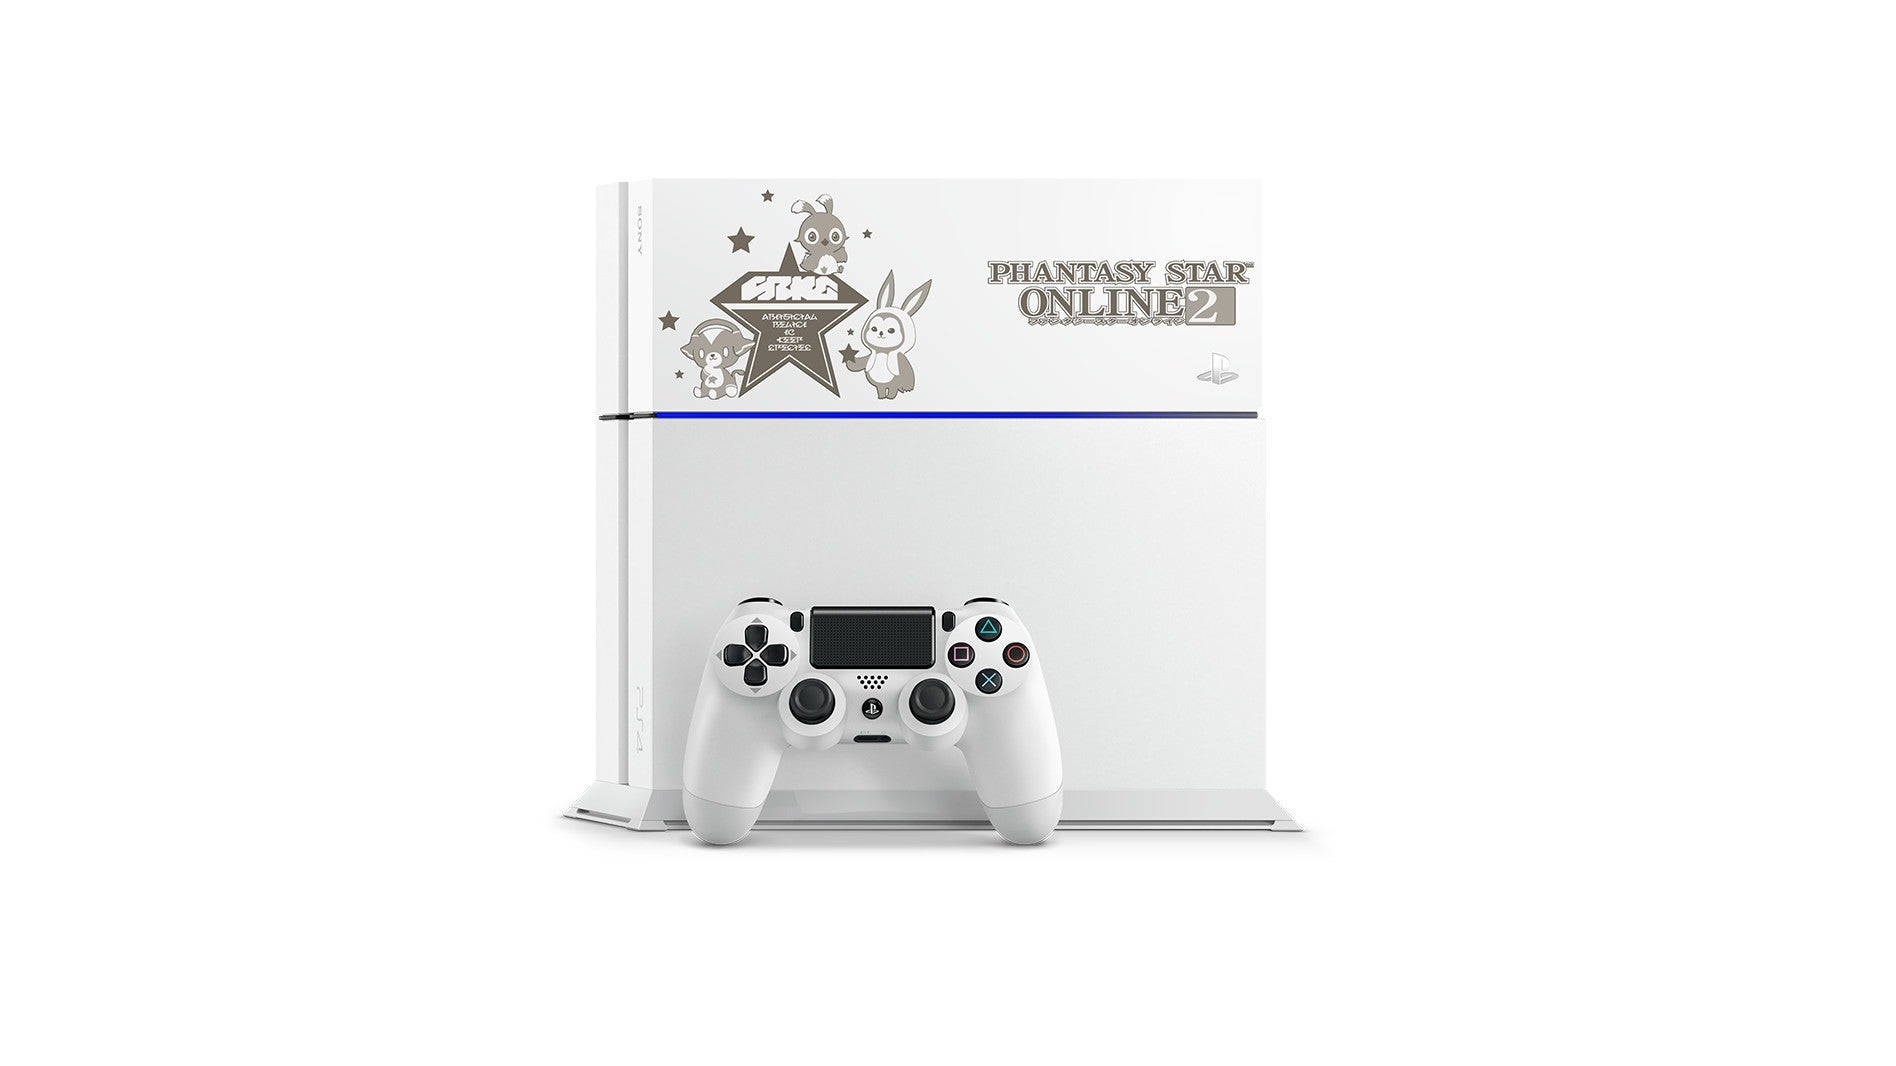 Playstation 4 Phantasy Star Online 2 500 Gb Model Glacier White Lim Stik Ps4 New Limited Edition